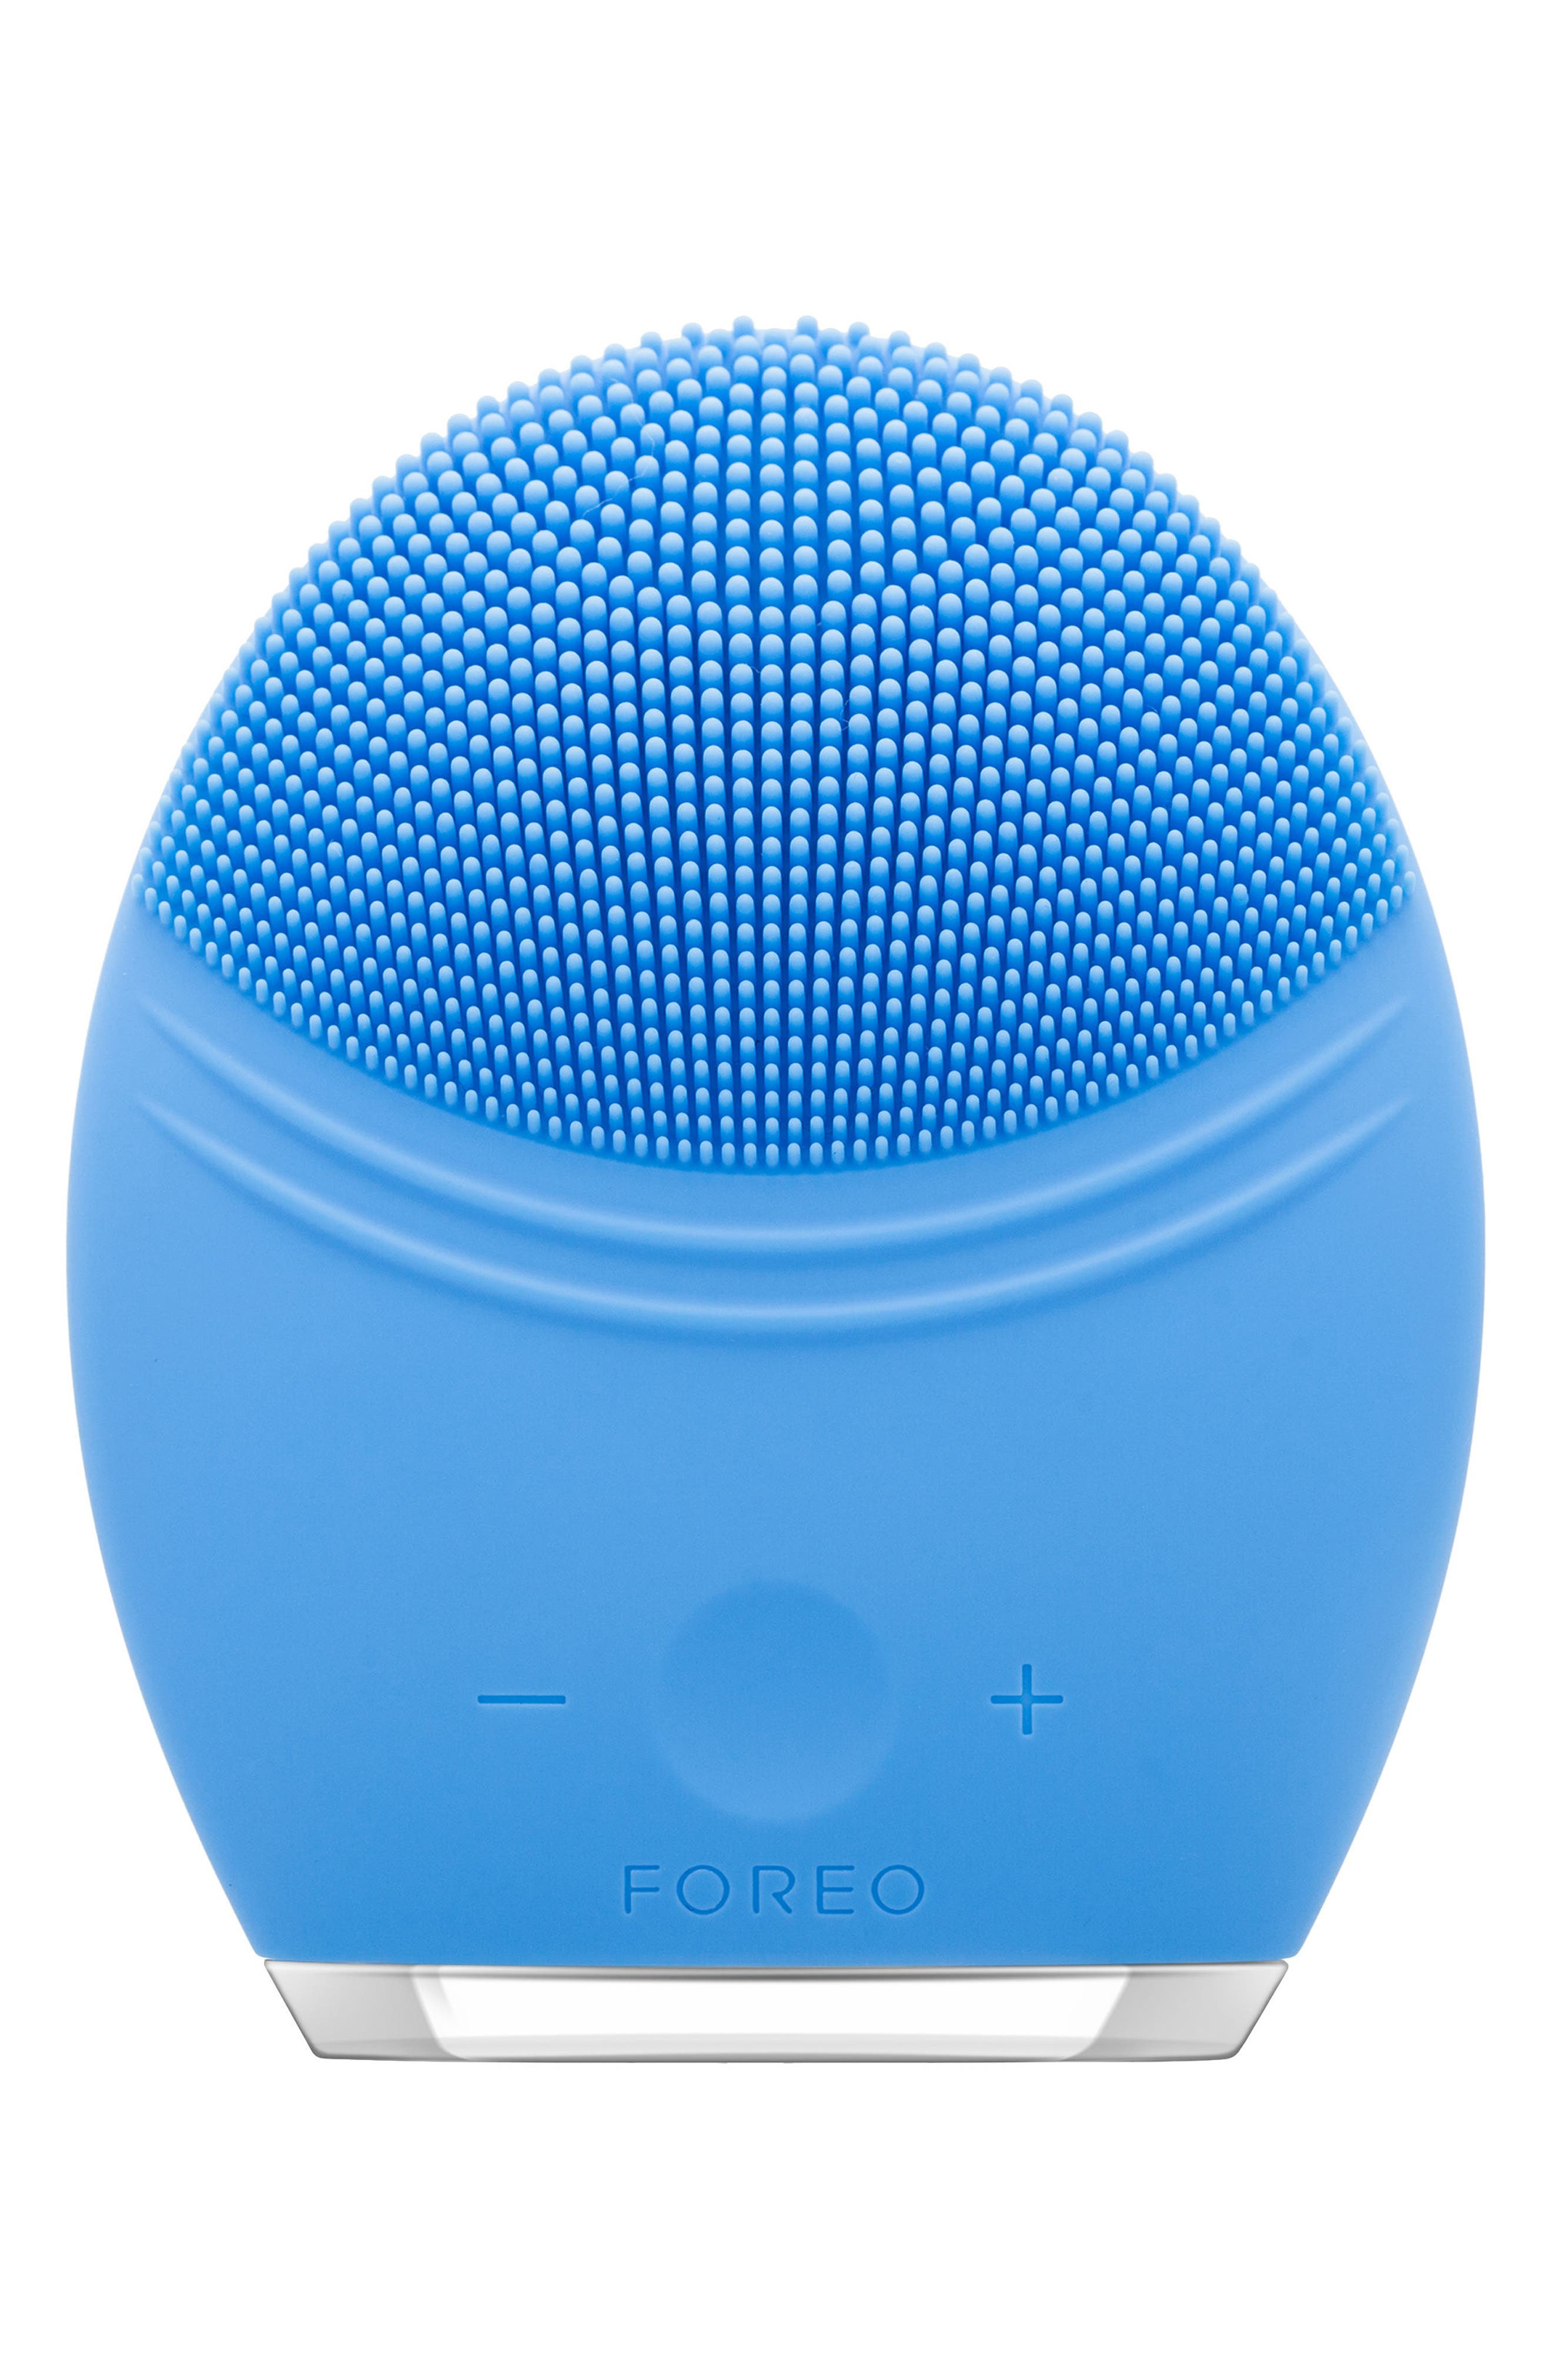 LUNA<sup>™</sup> 2 Pro Facial Cleansing & Anti-Aging Device,                             Main thumbnail 1, color,                             AQUAMARINE